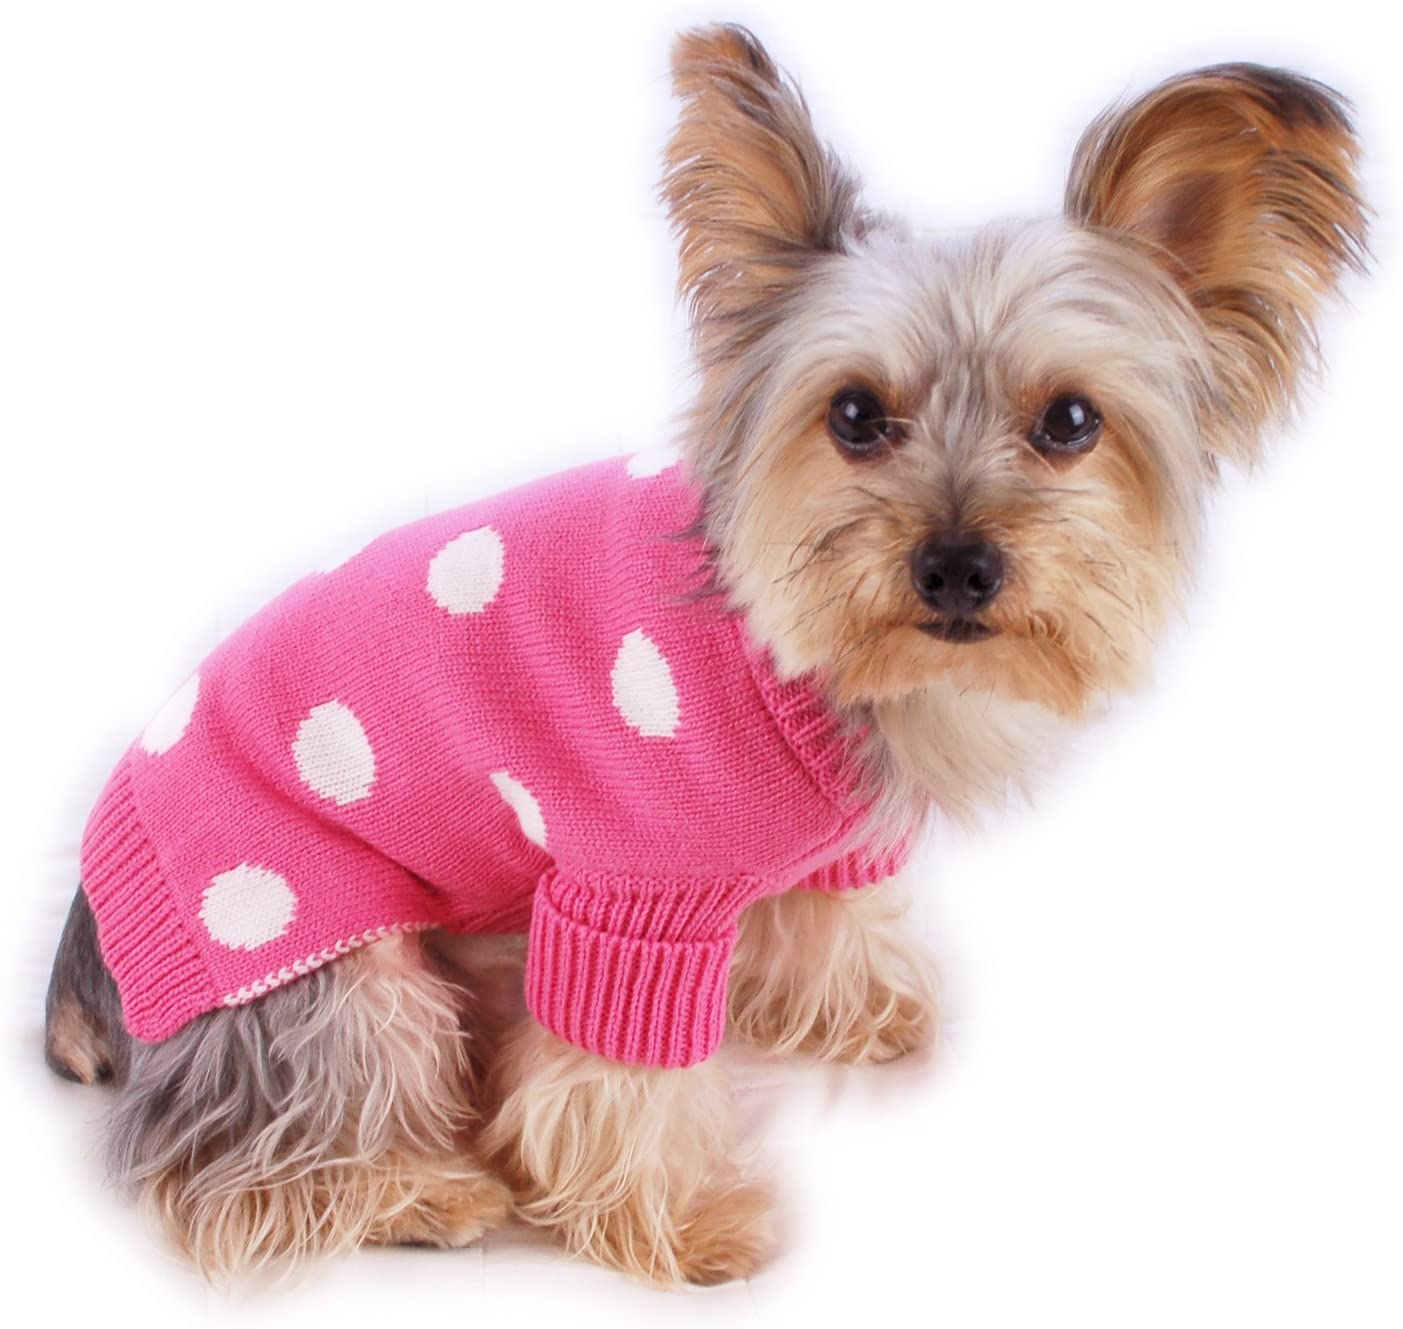 dog clothes Size xs dog clothing Lime green and pink dress XS size